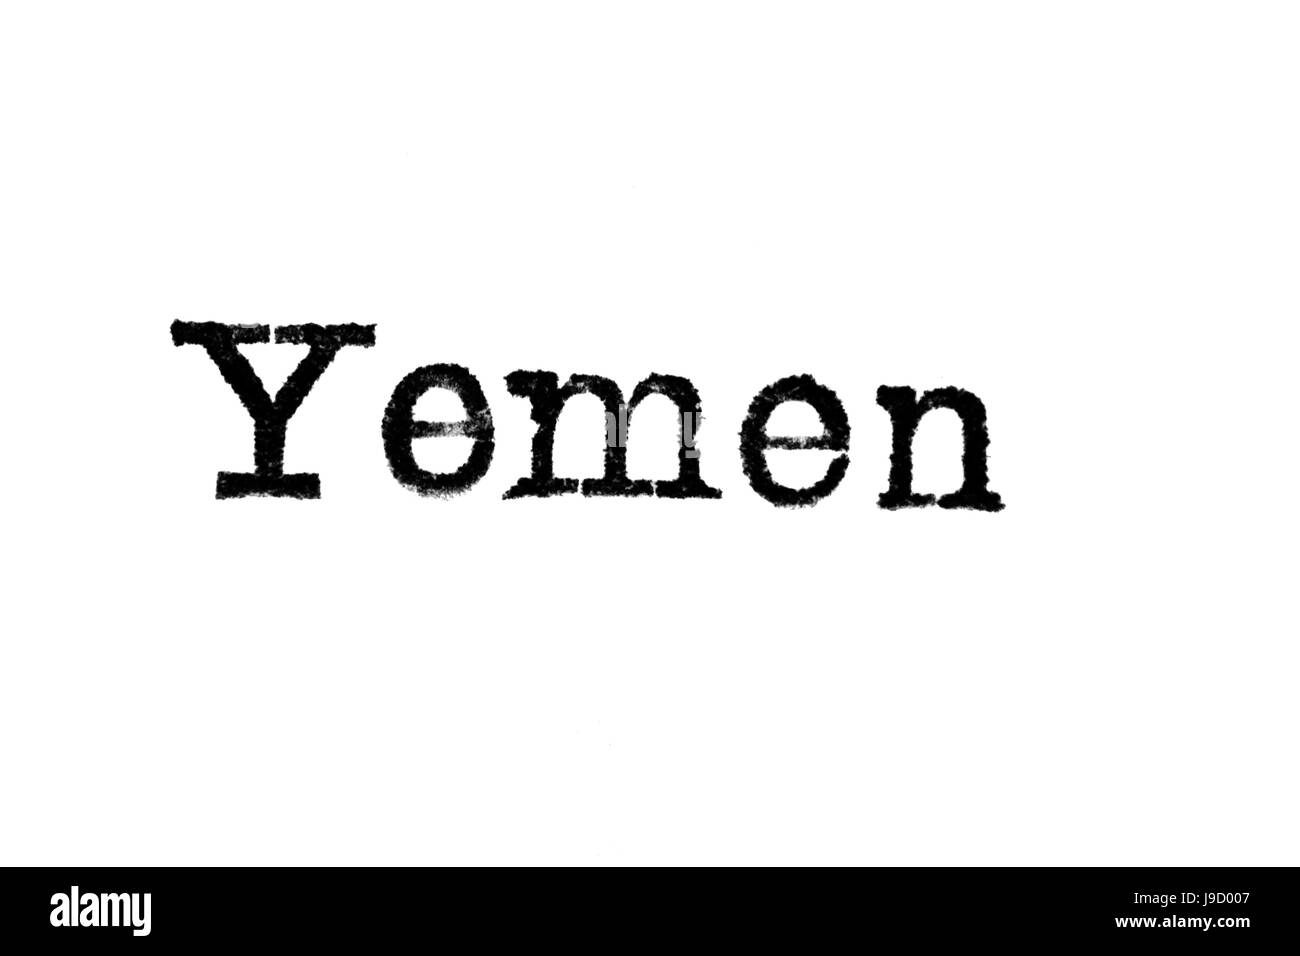 The word 'Yemen' from a typewriter on a white background - Stock Image